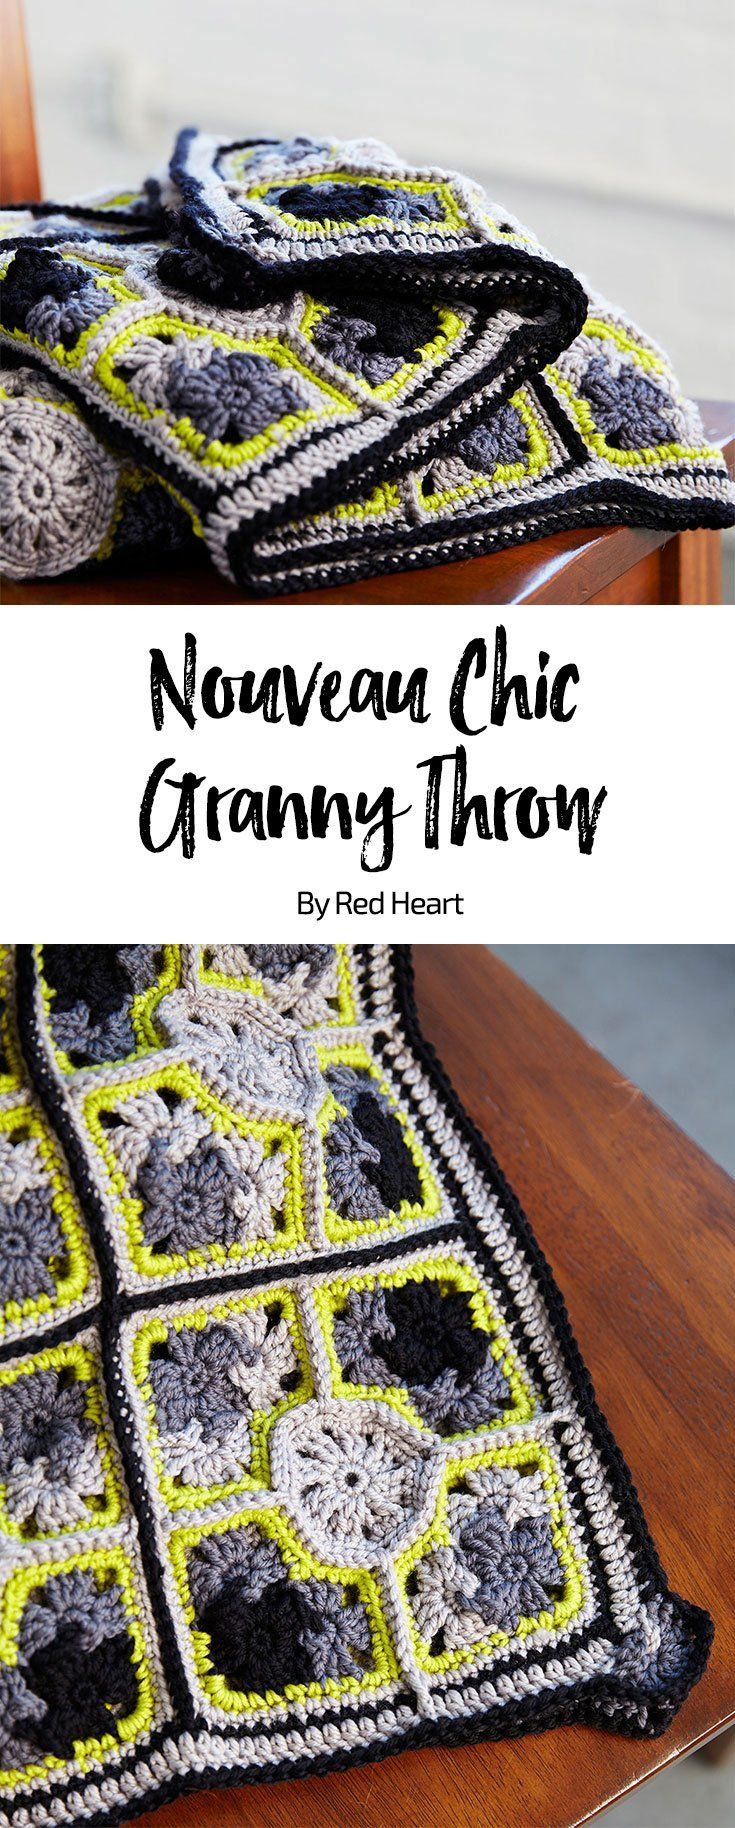 Awesome 2712 Best New New Free Patterns Images On Pinterest Red Heart Chic Sheep Yarn Of Charming 41 Images Red Heart Chic Sheep Yarn